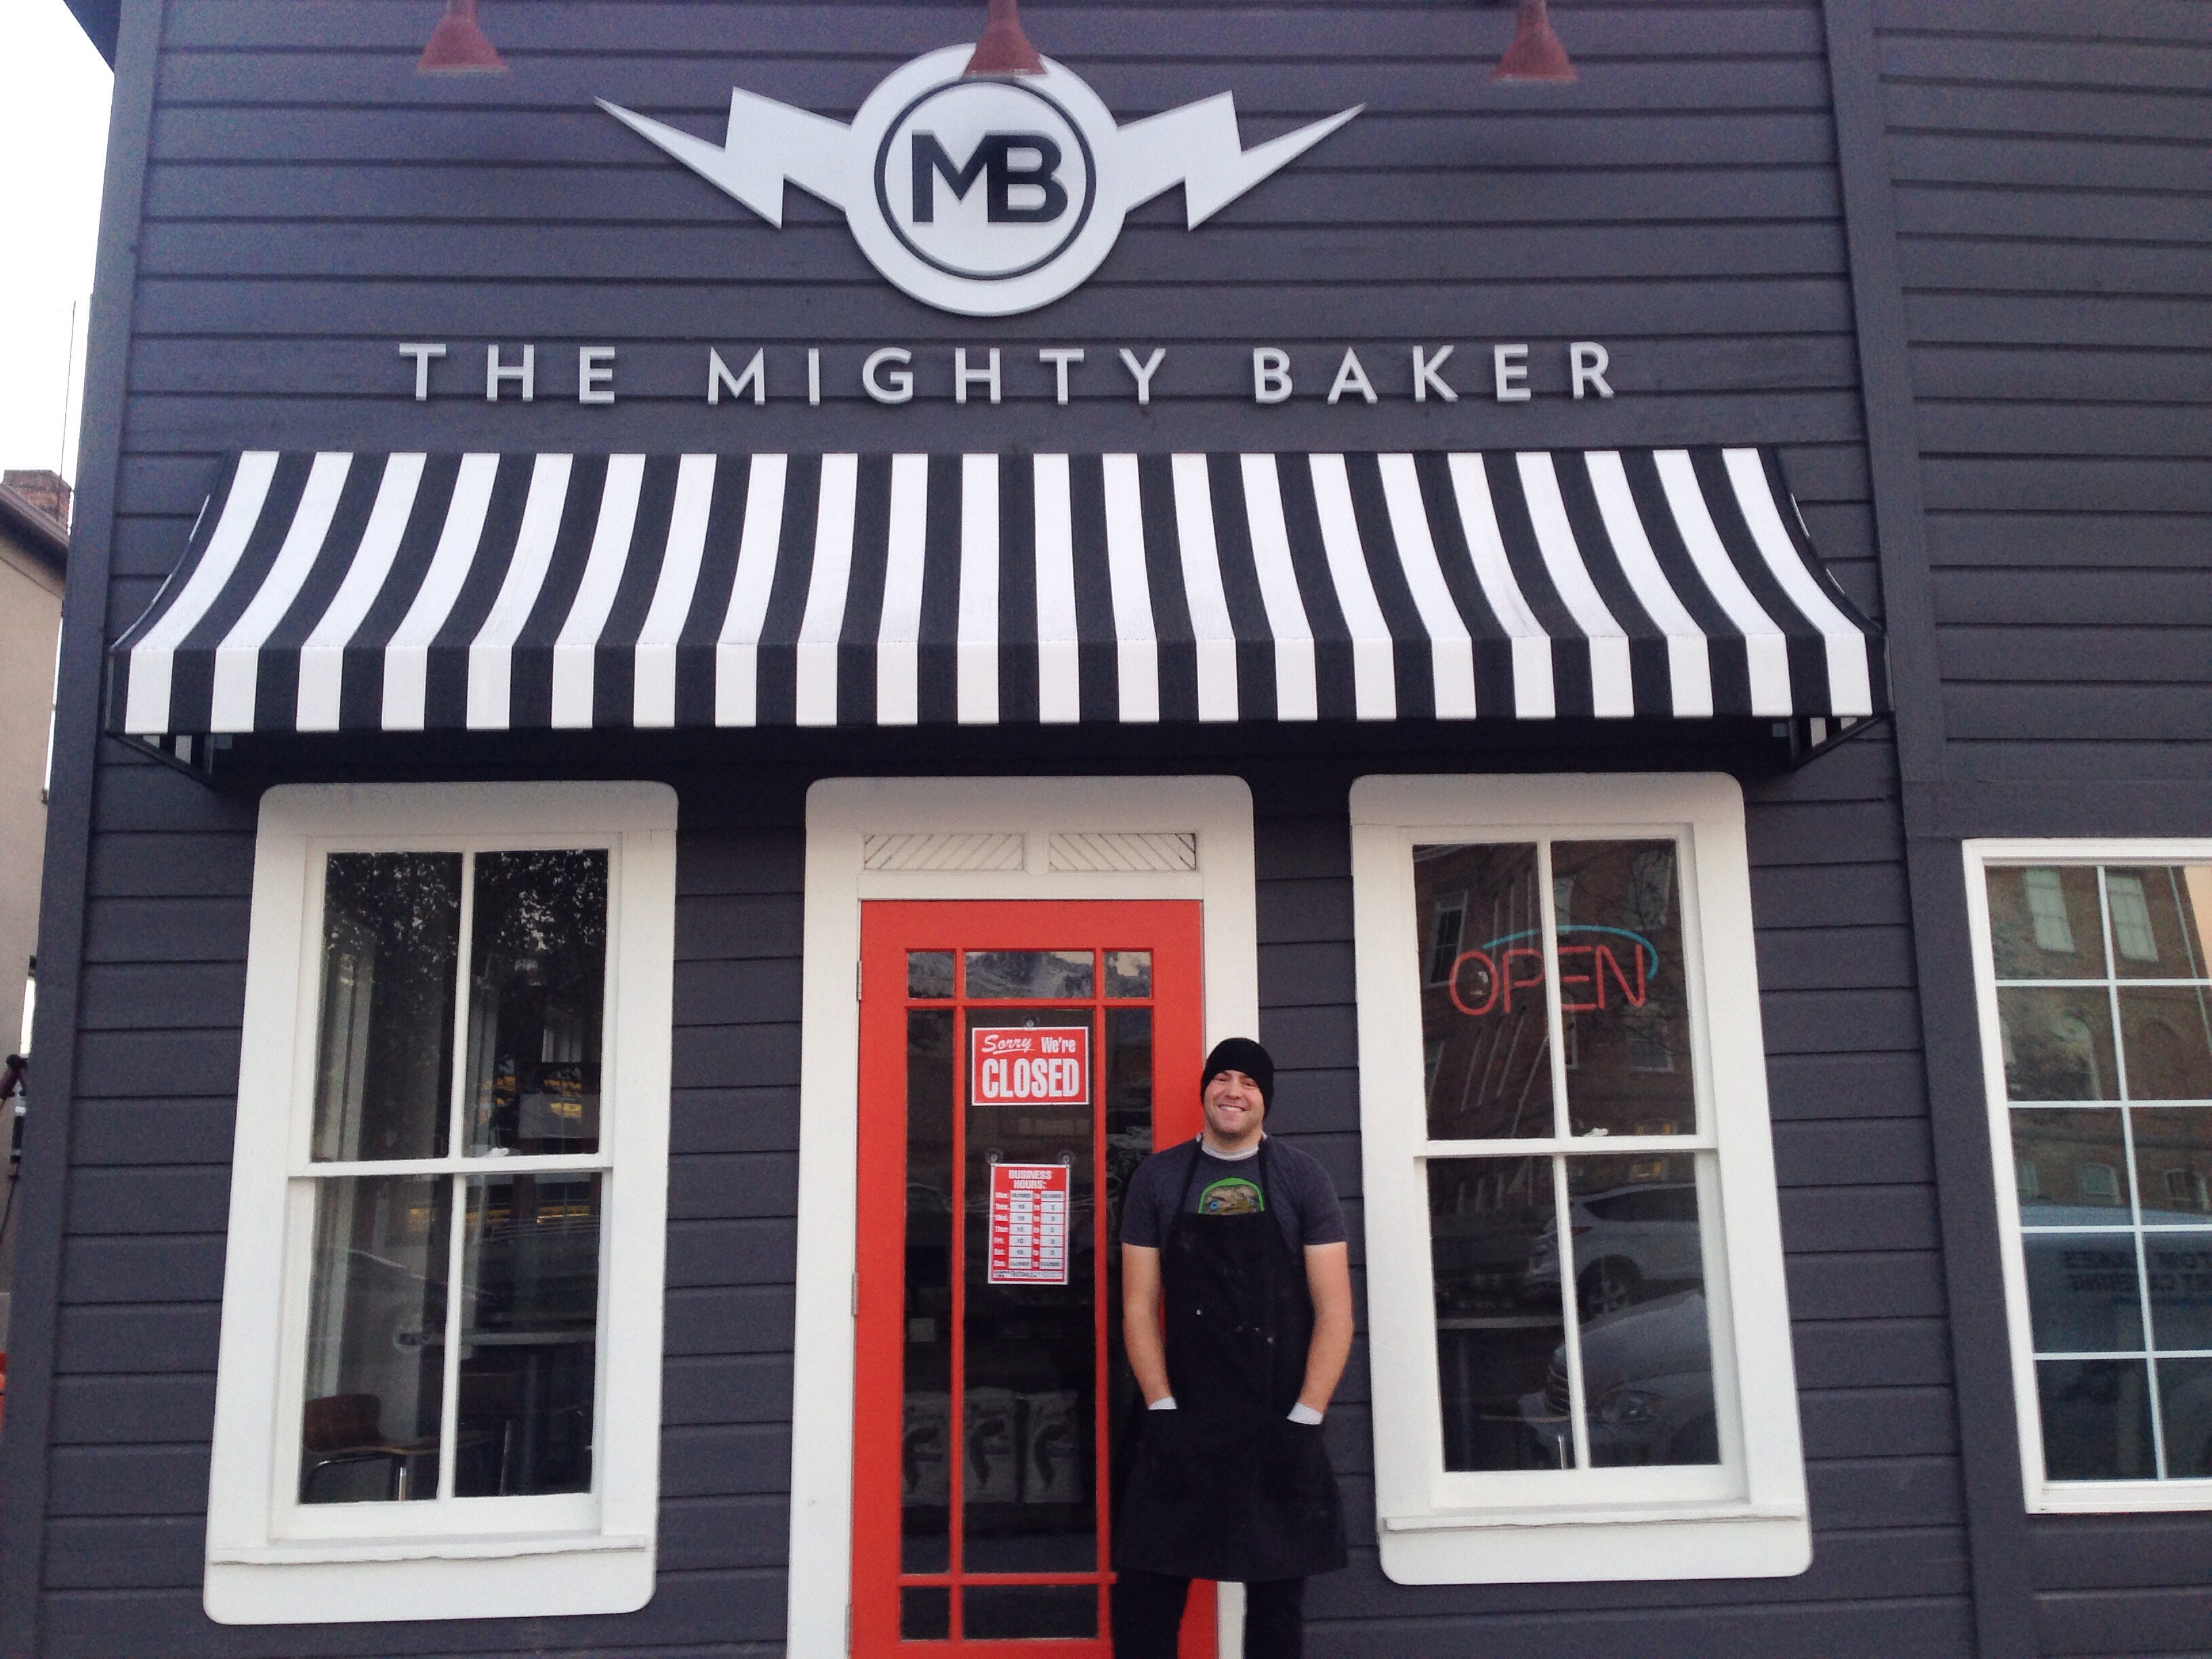 Pete Tidwell stands in front of his new storefront, The